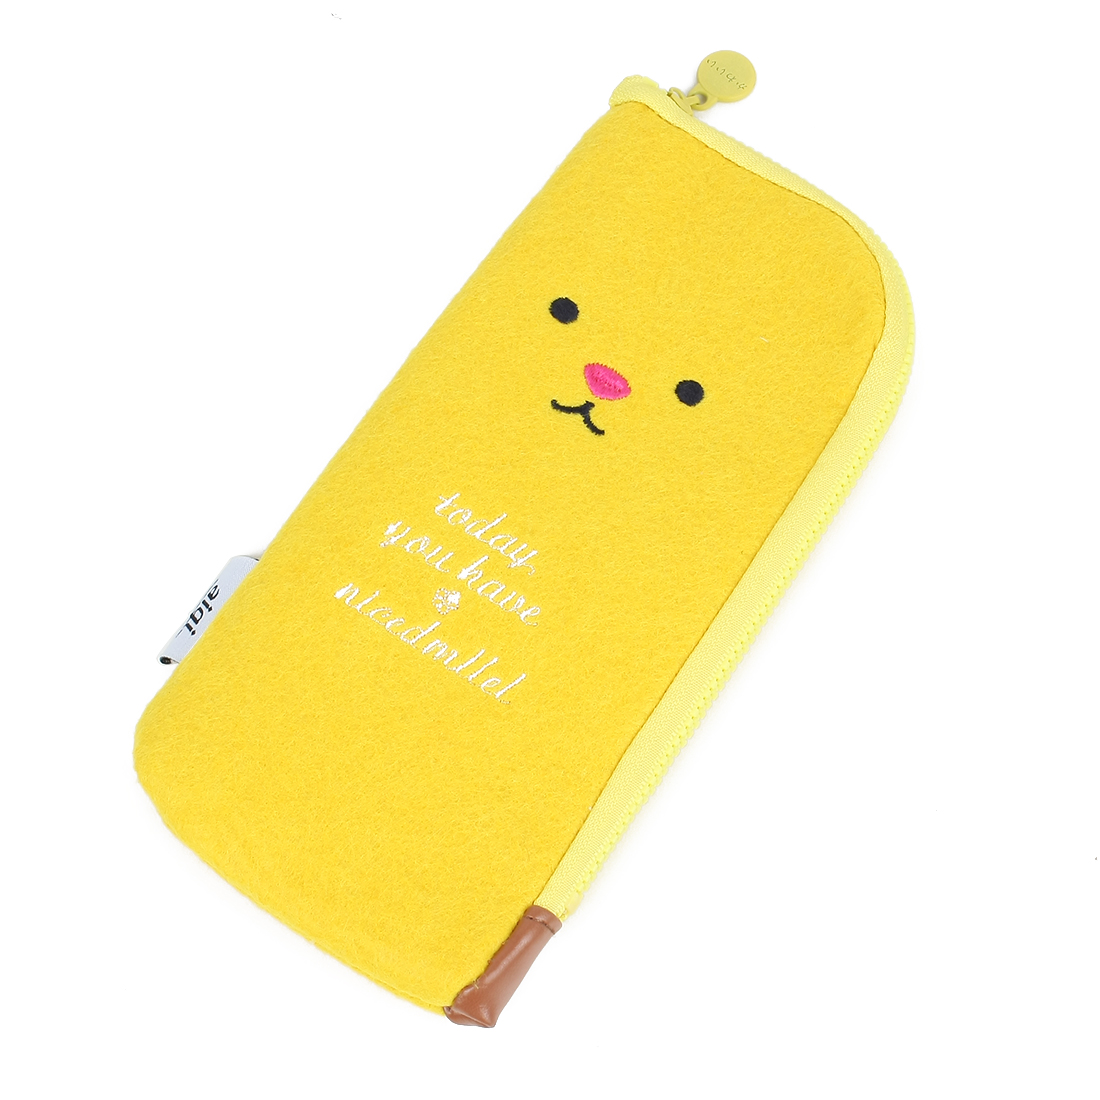 Pencil Rulers Pen Case Holder Nylon Bag Pouch Yellow